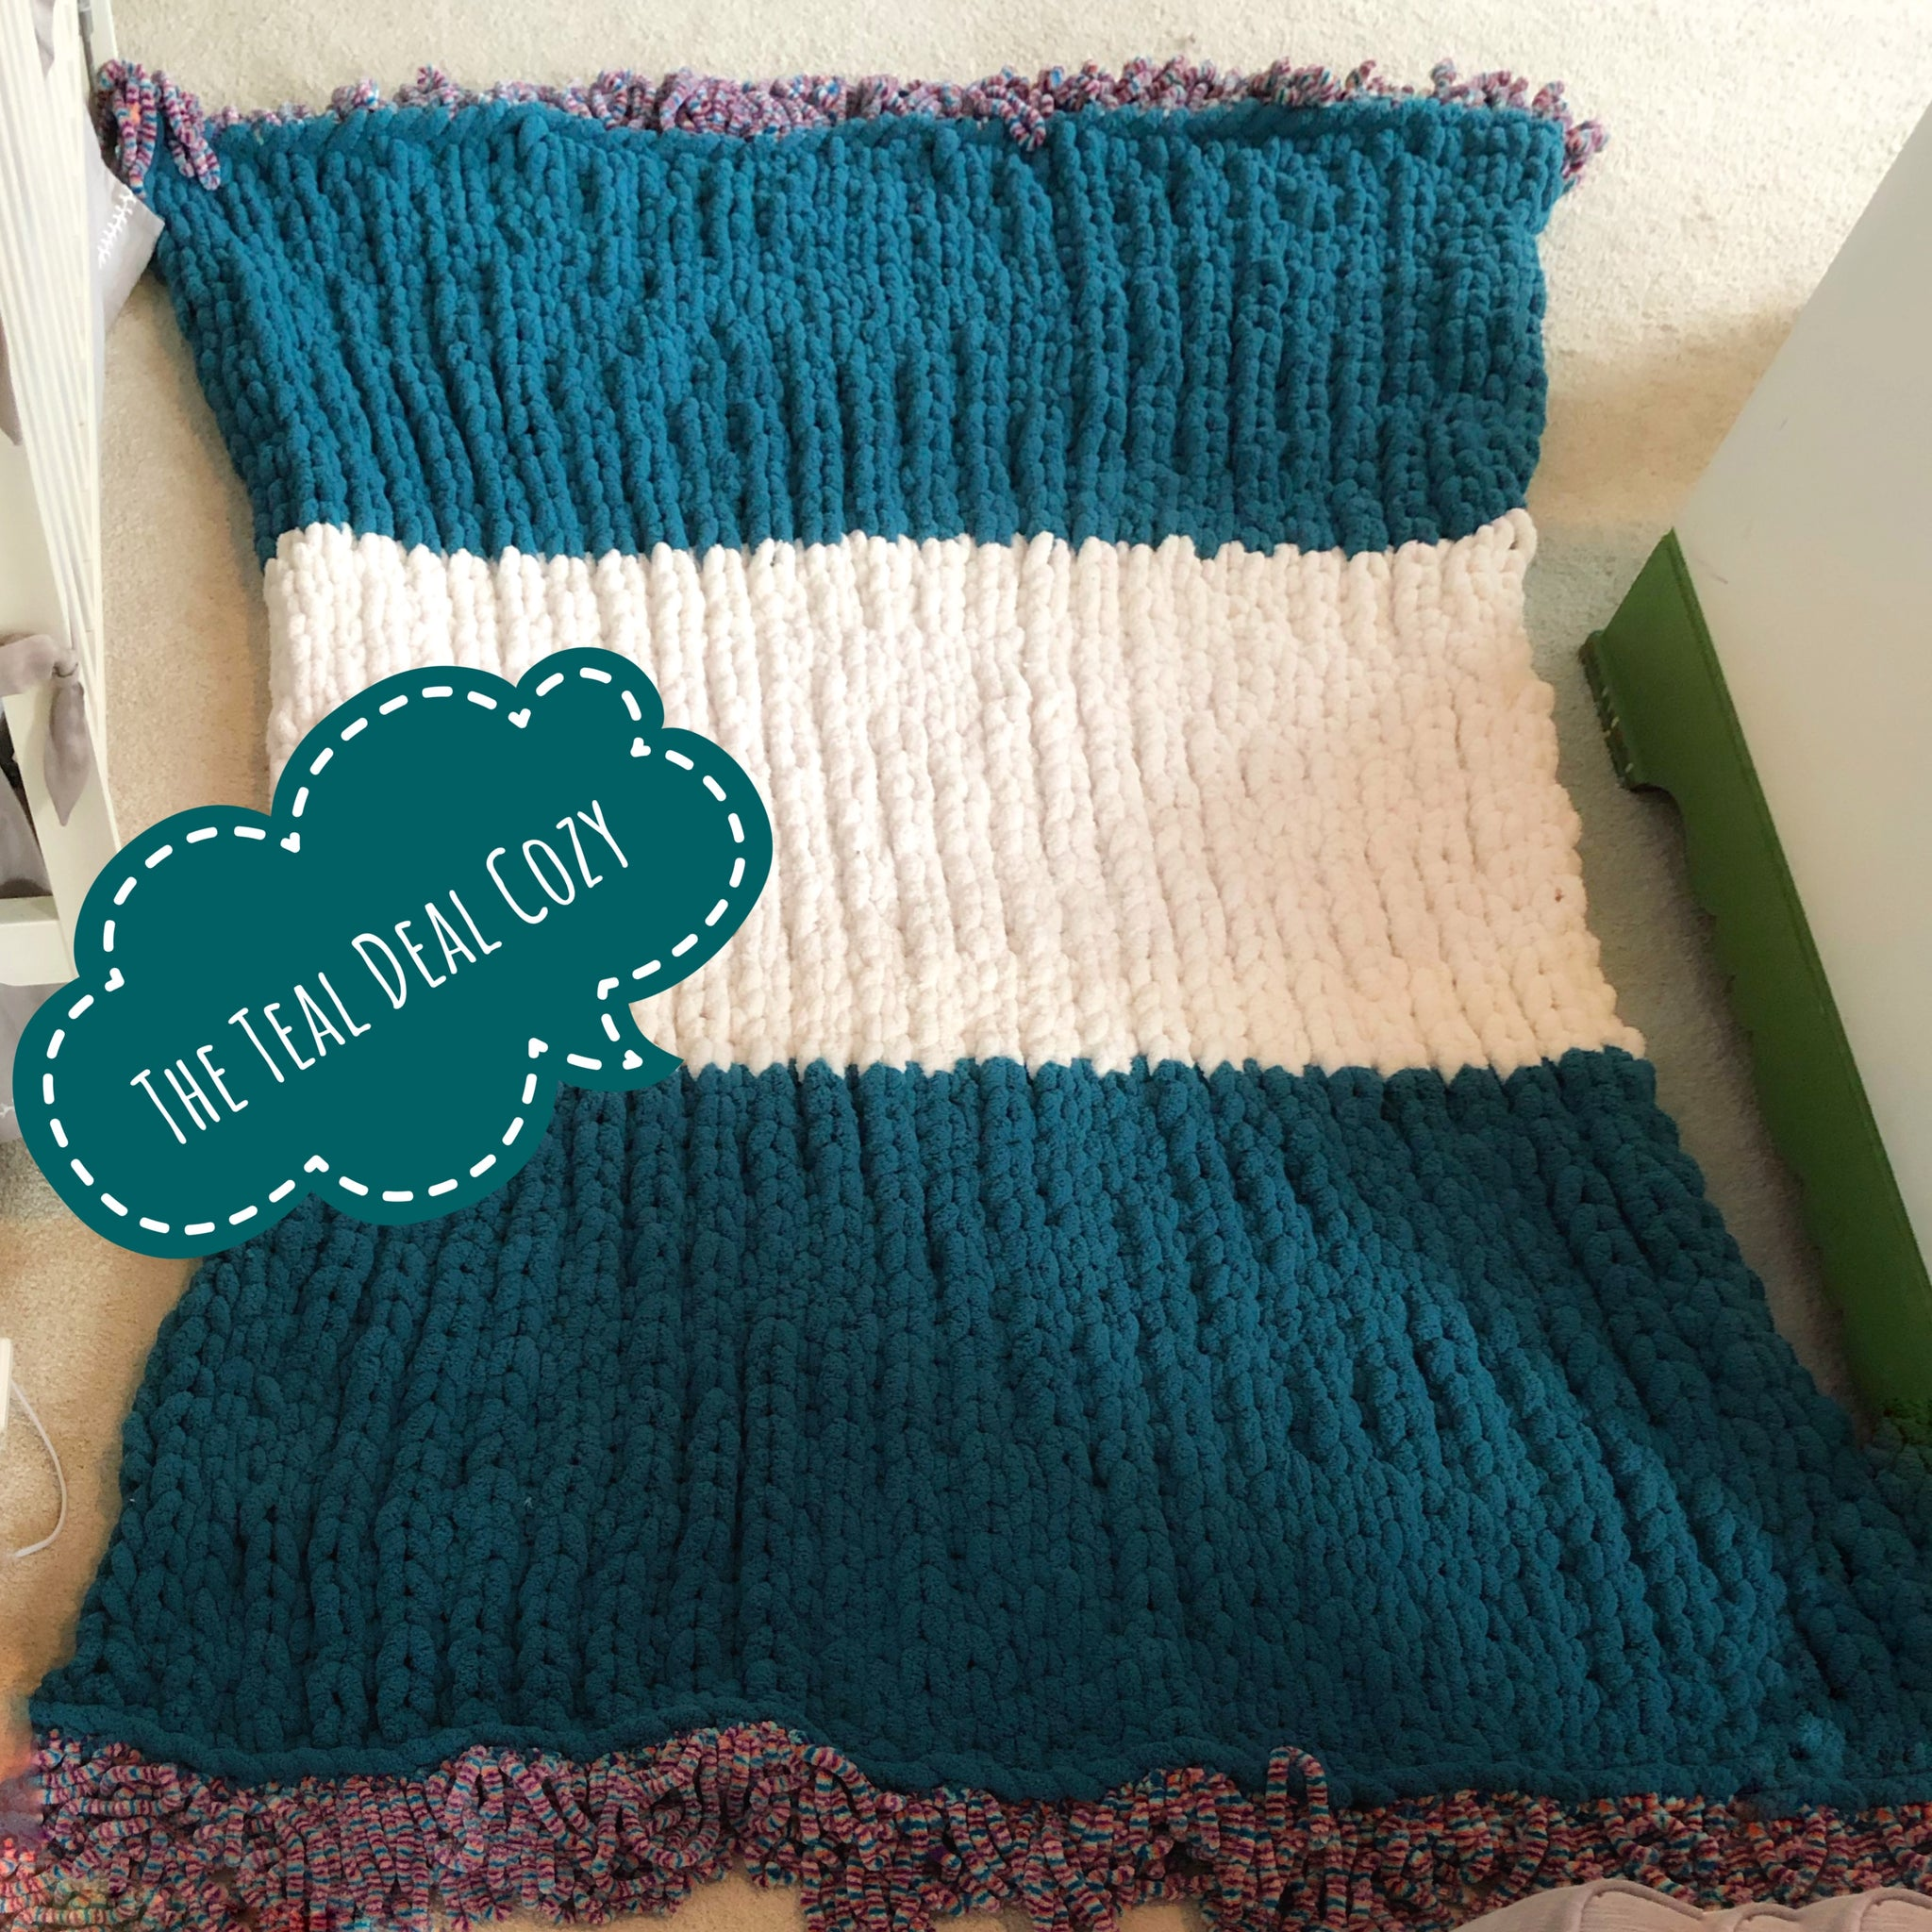 The Teal Deal Sofa Cozy